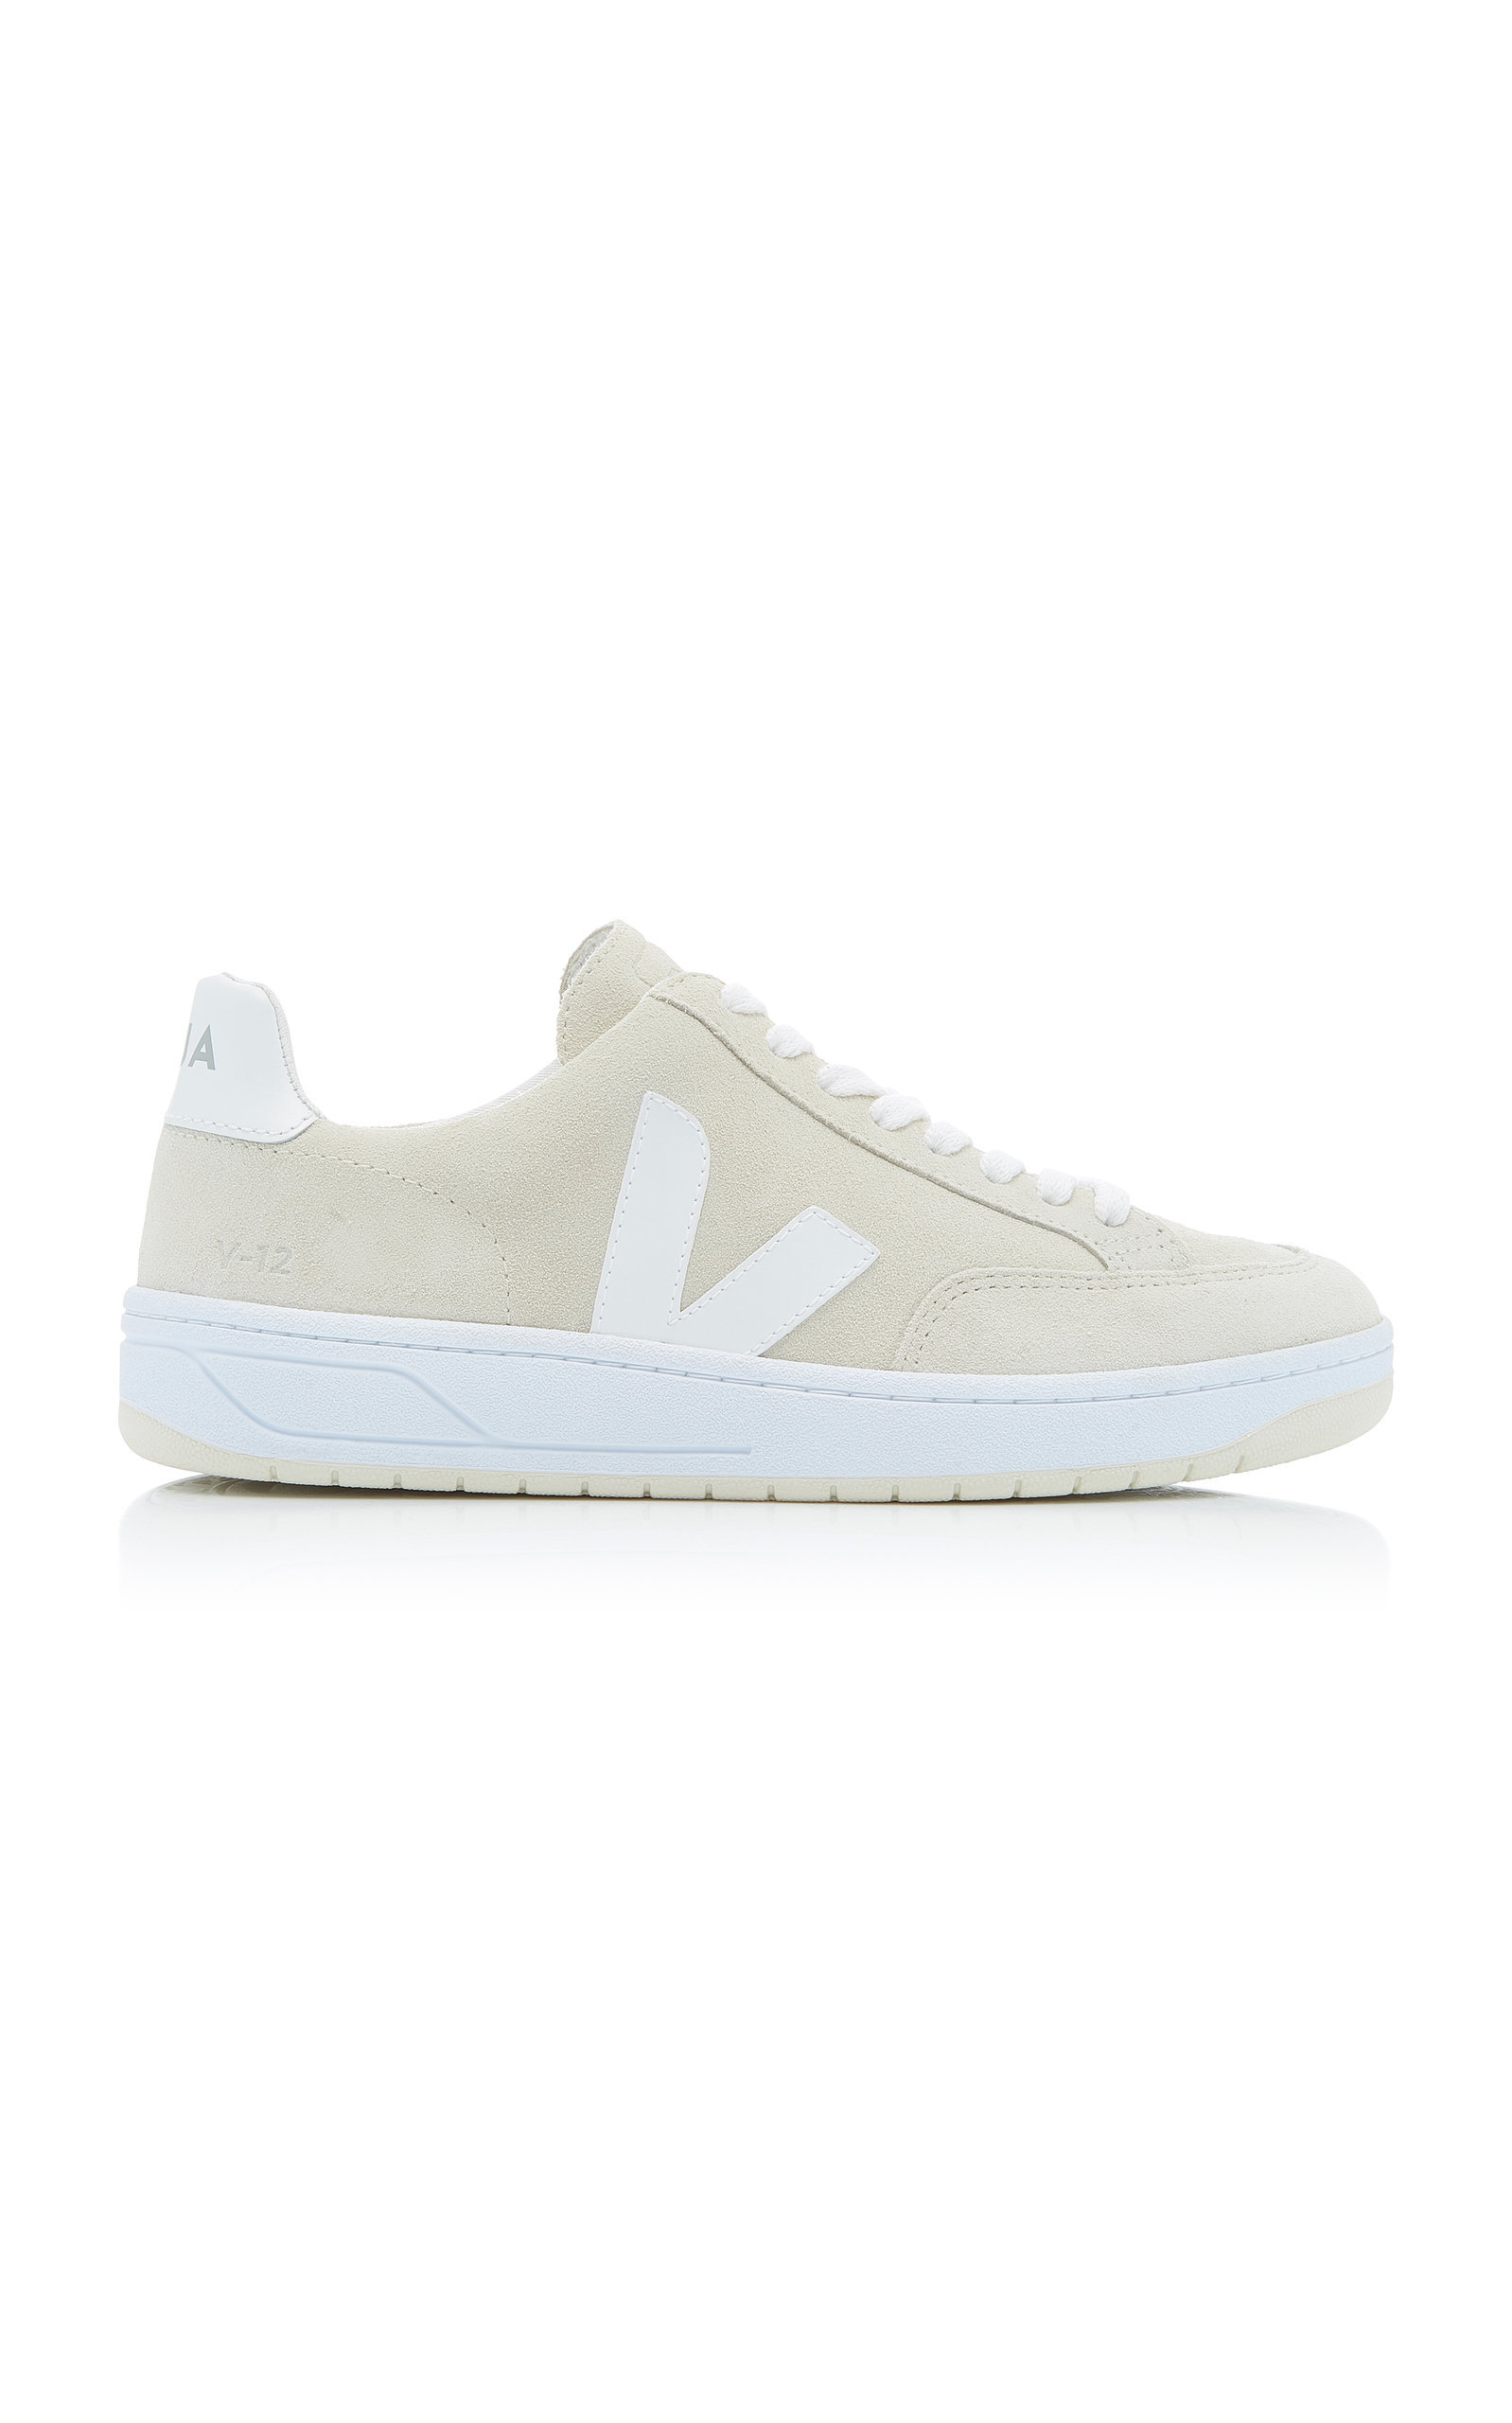 Veja Bastille Two-Tone Leather Sneakers In Neutral